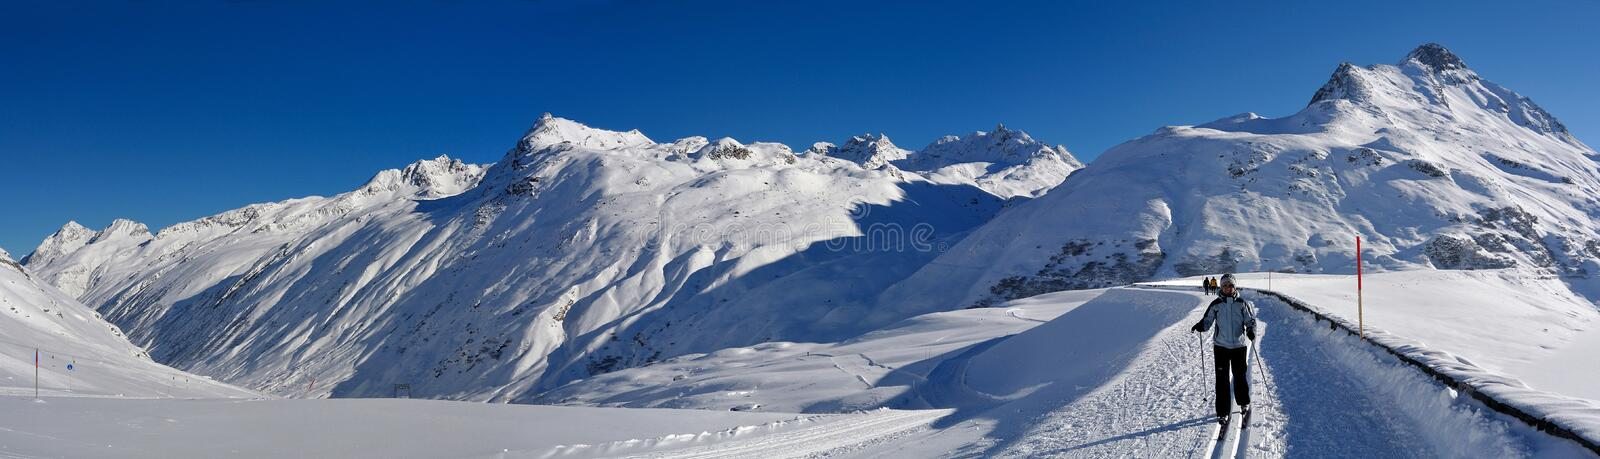 Cross-Country Skiing at Silvretta Stausee, Austria royalty free stock photography